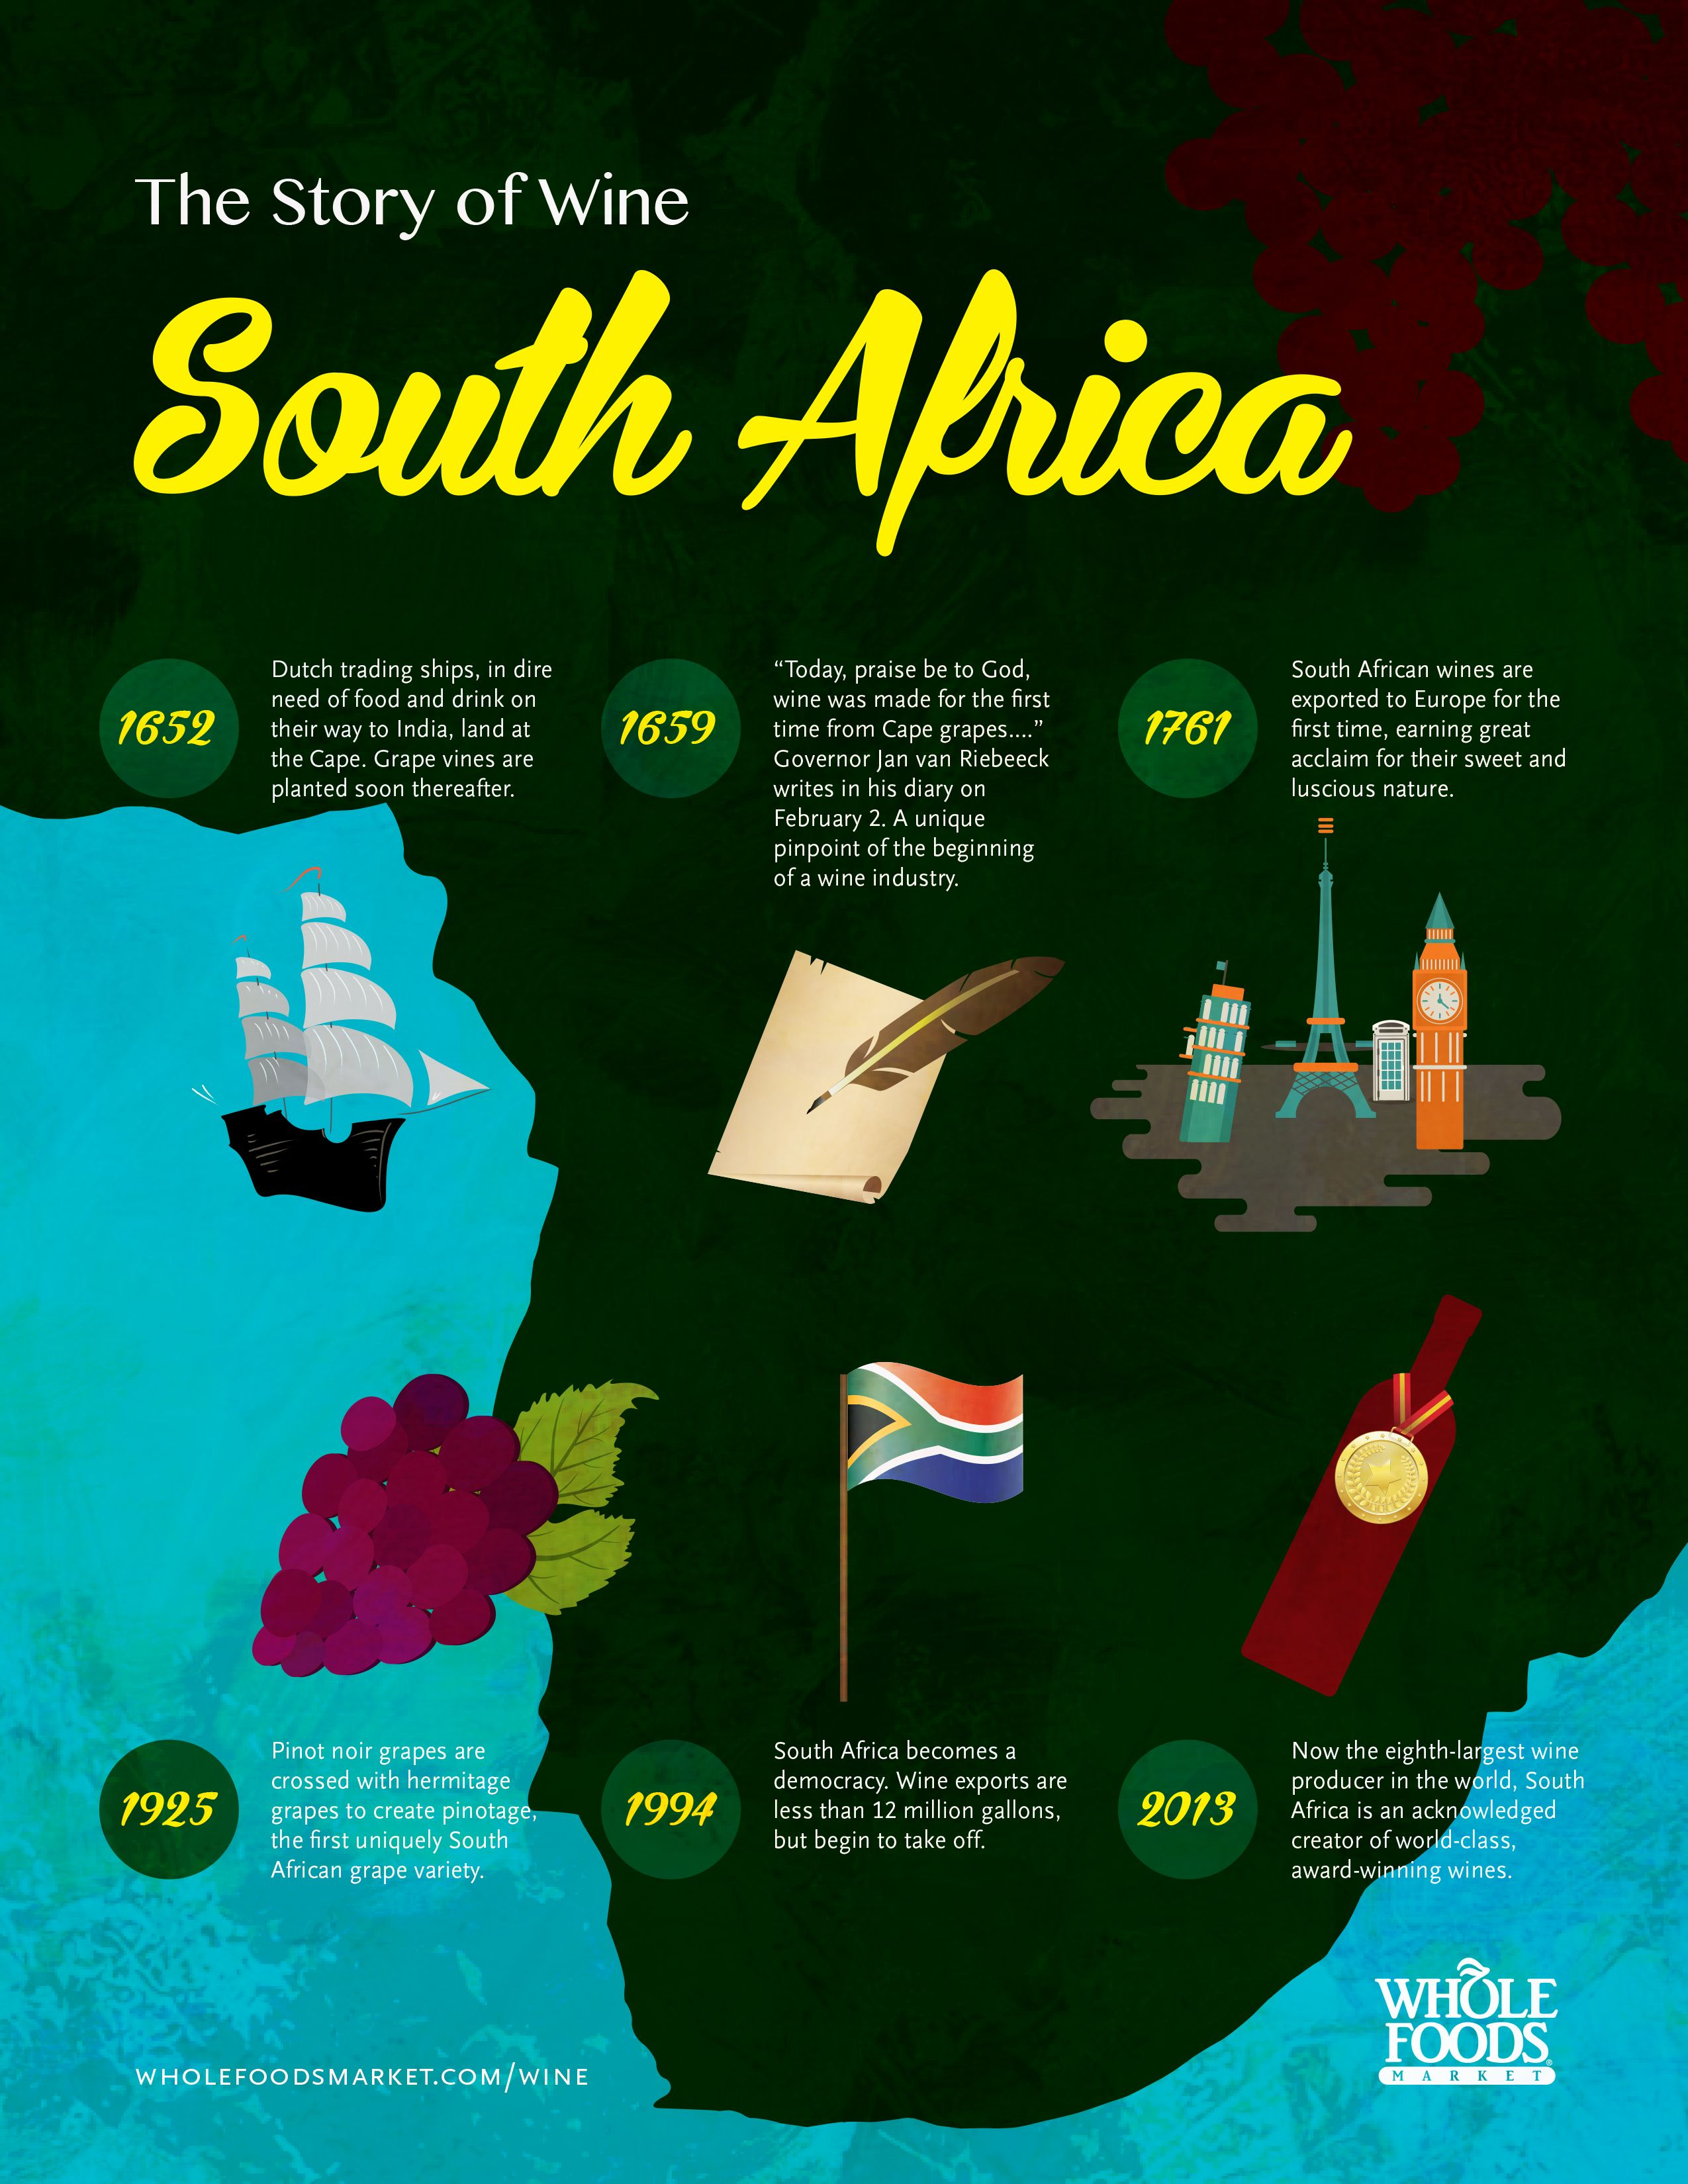 The History Of Wine From South Africa